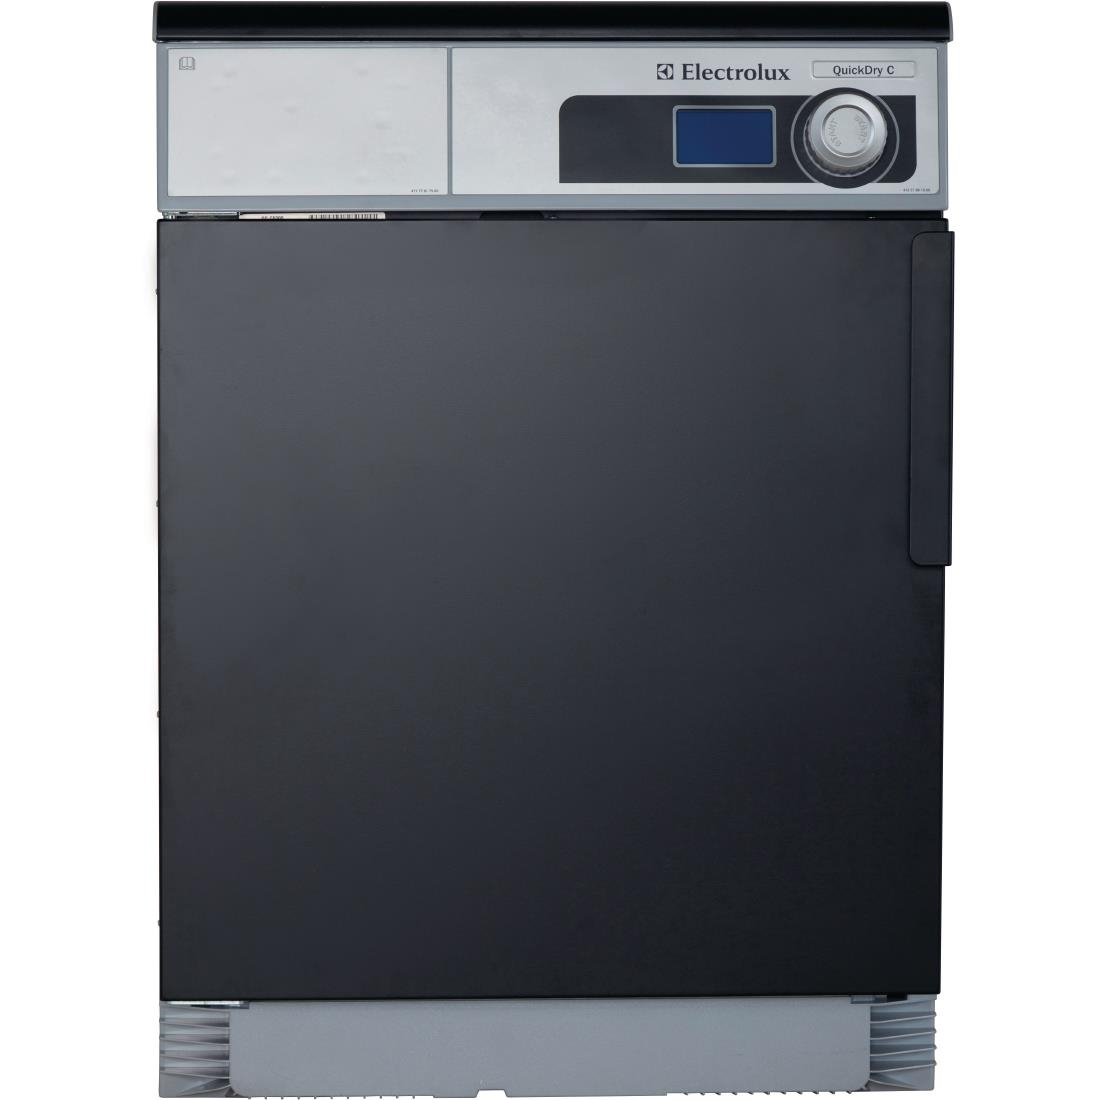 electrolux glasswasher. electrolux-quickdry-tumble-dryer electrolux glasswasher